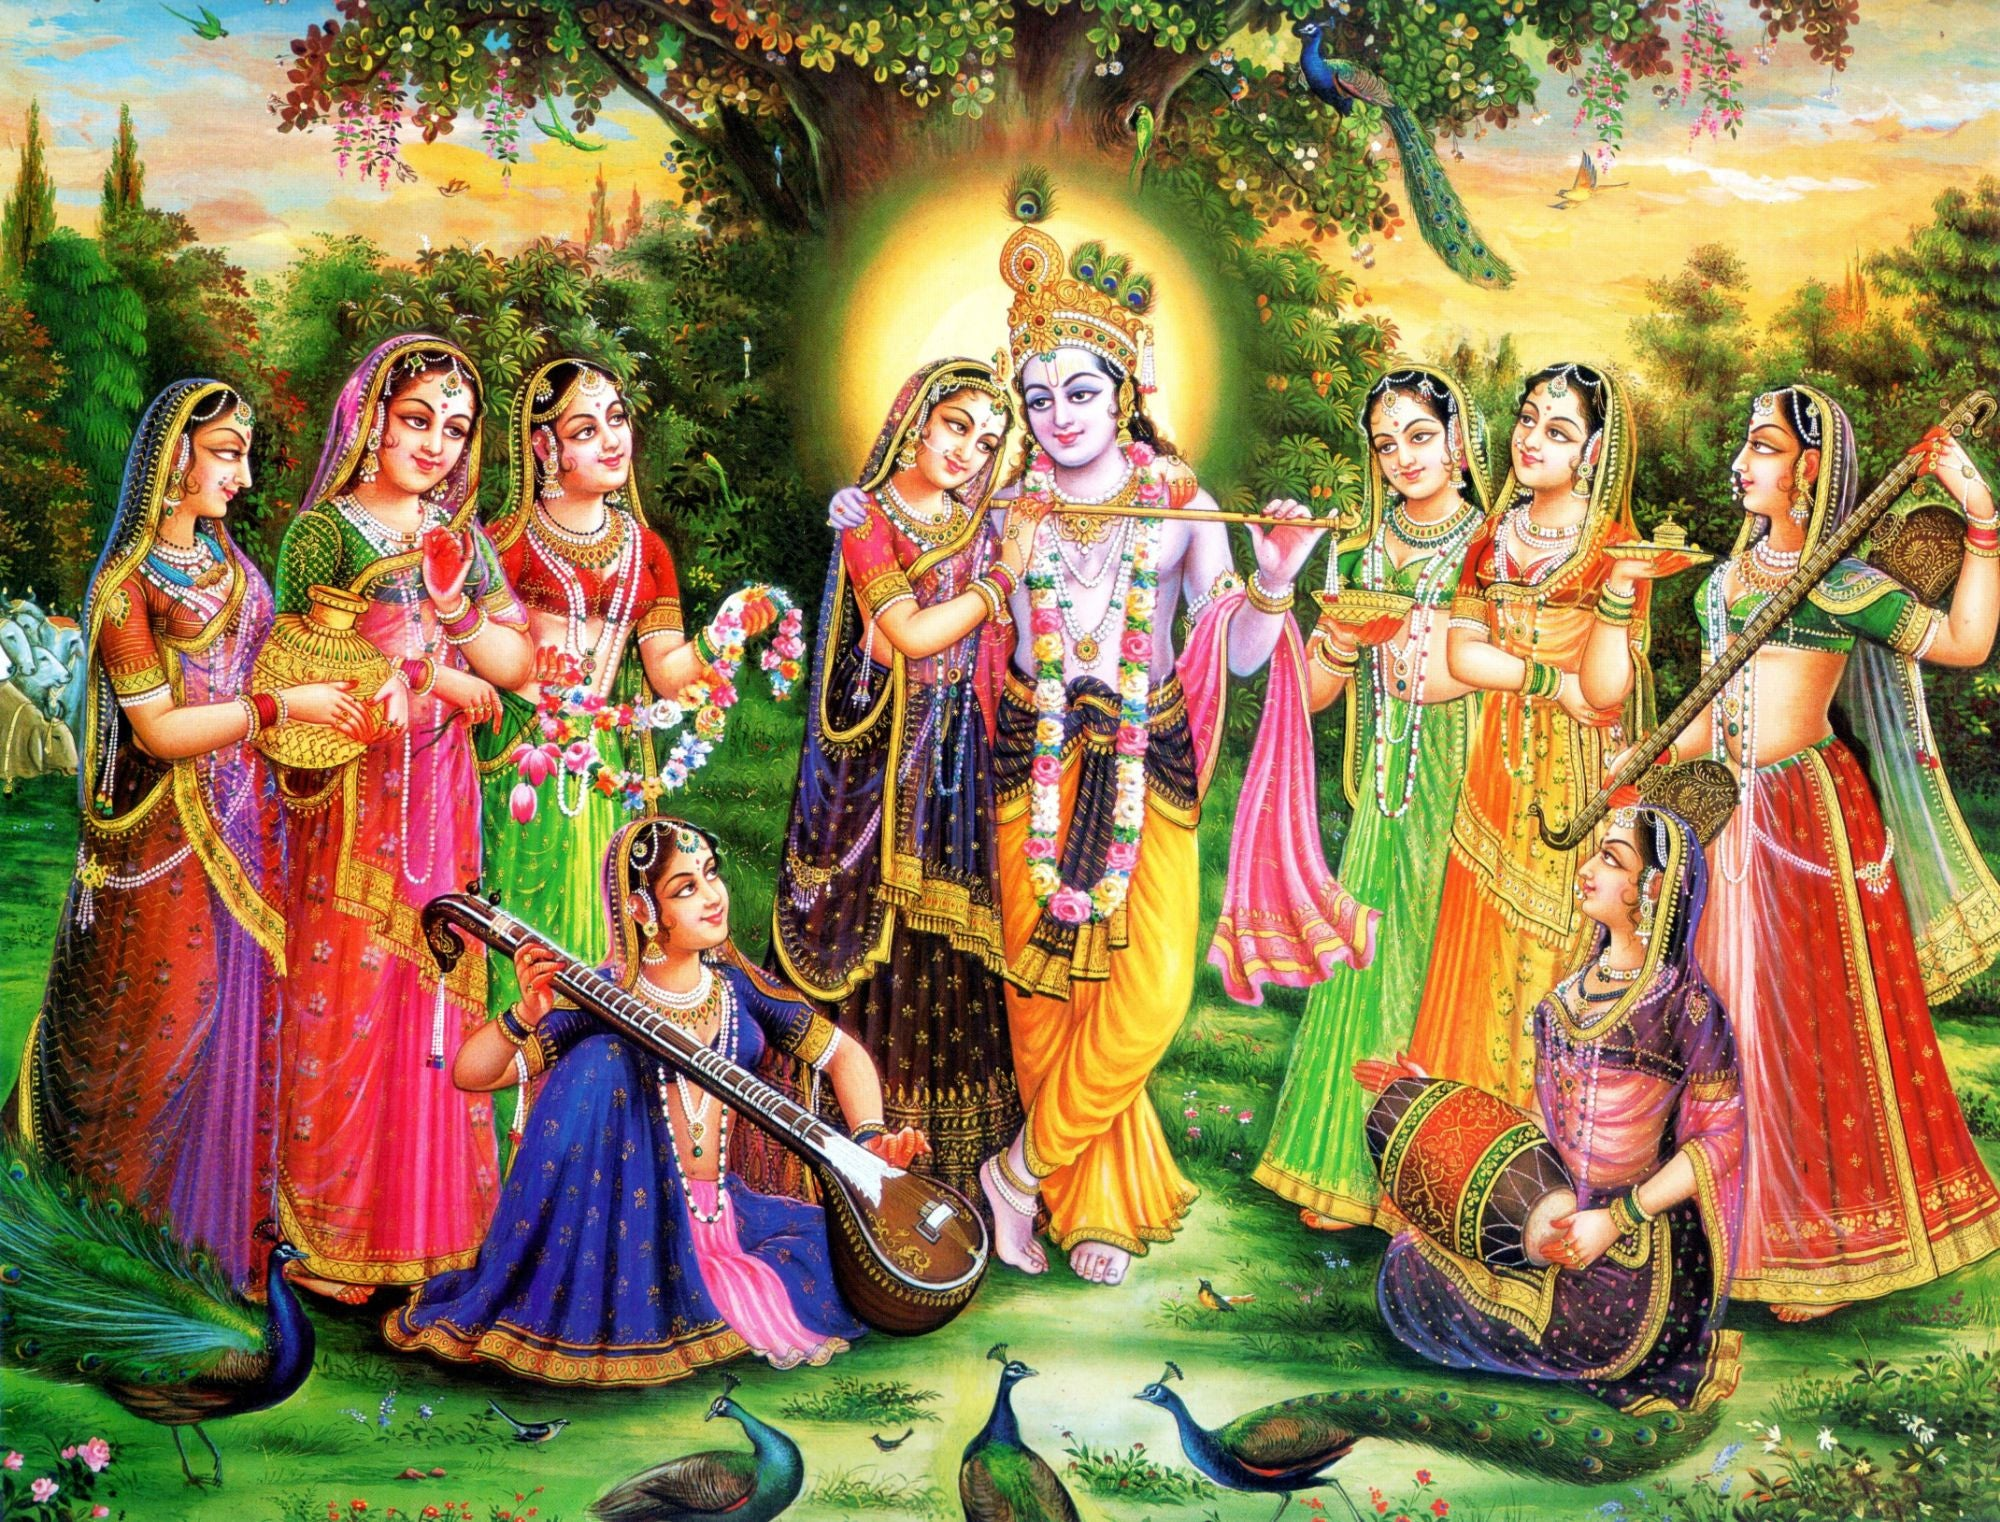 Krishna Paintings — Krishna And Gopis | Buy Posters, Frames, Canvas, Digital Art & Large Size Prints